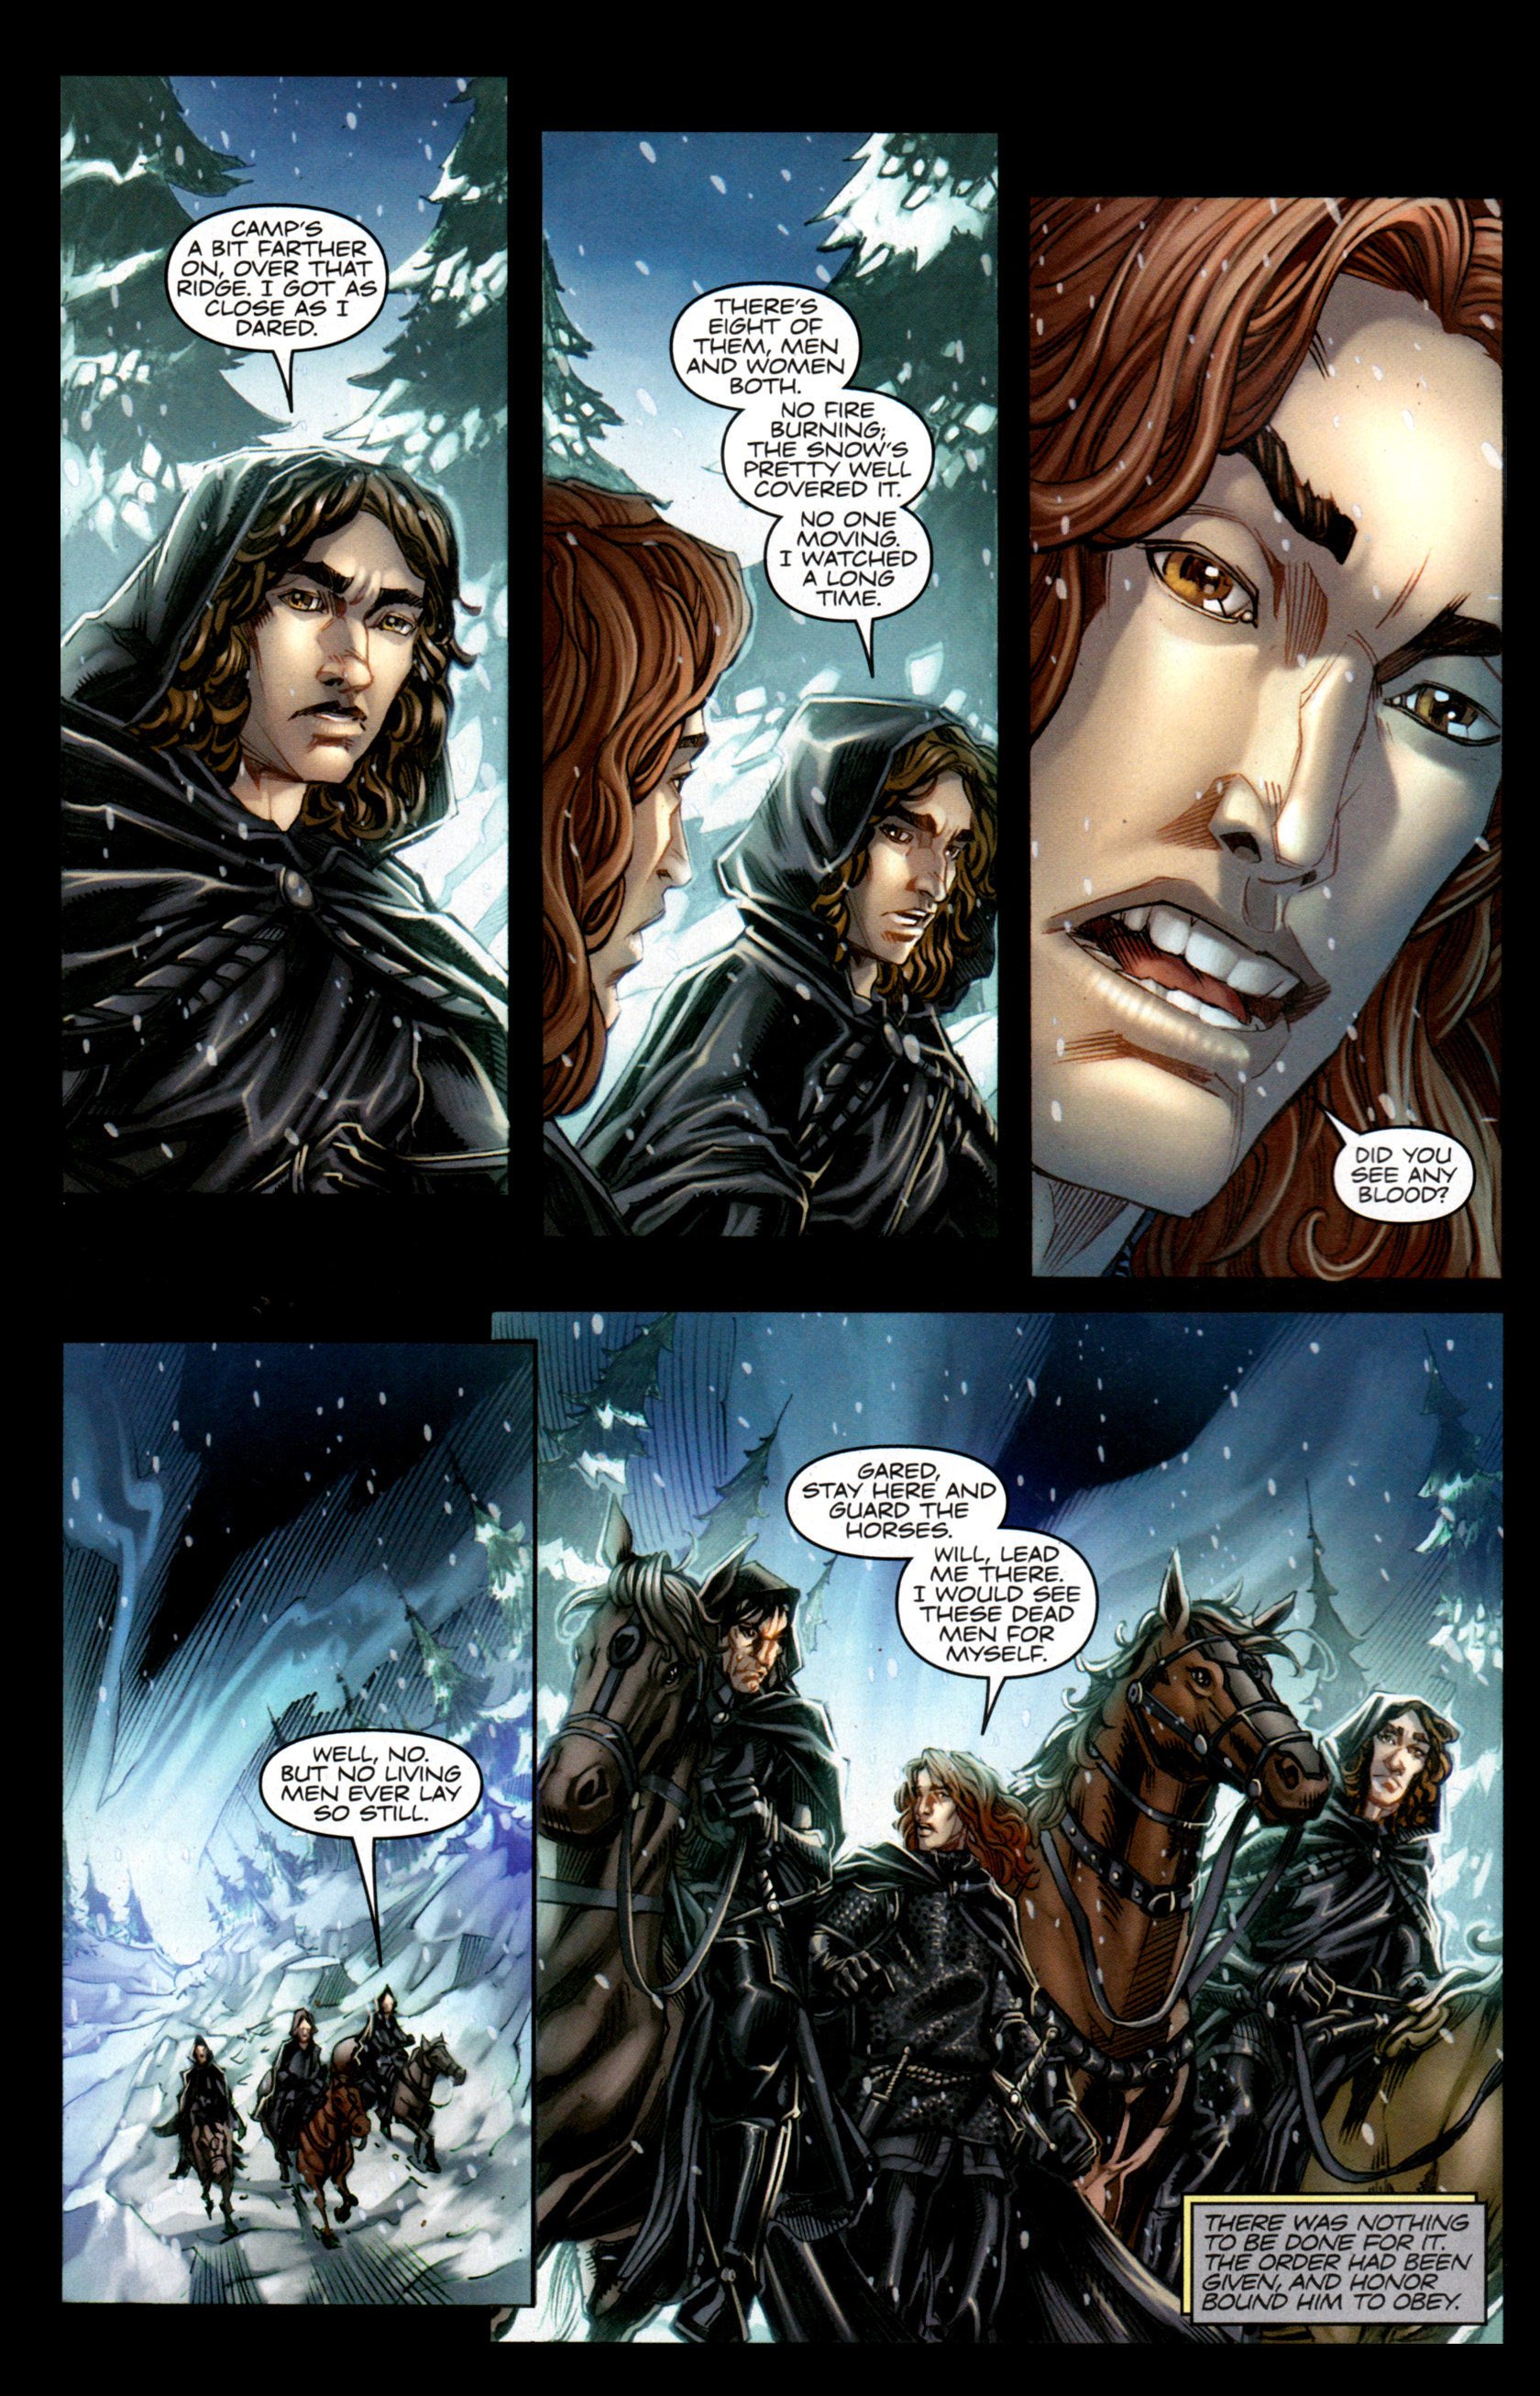 Read online A Game Of Thrones comic -  Issue #1 - 4